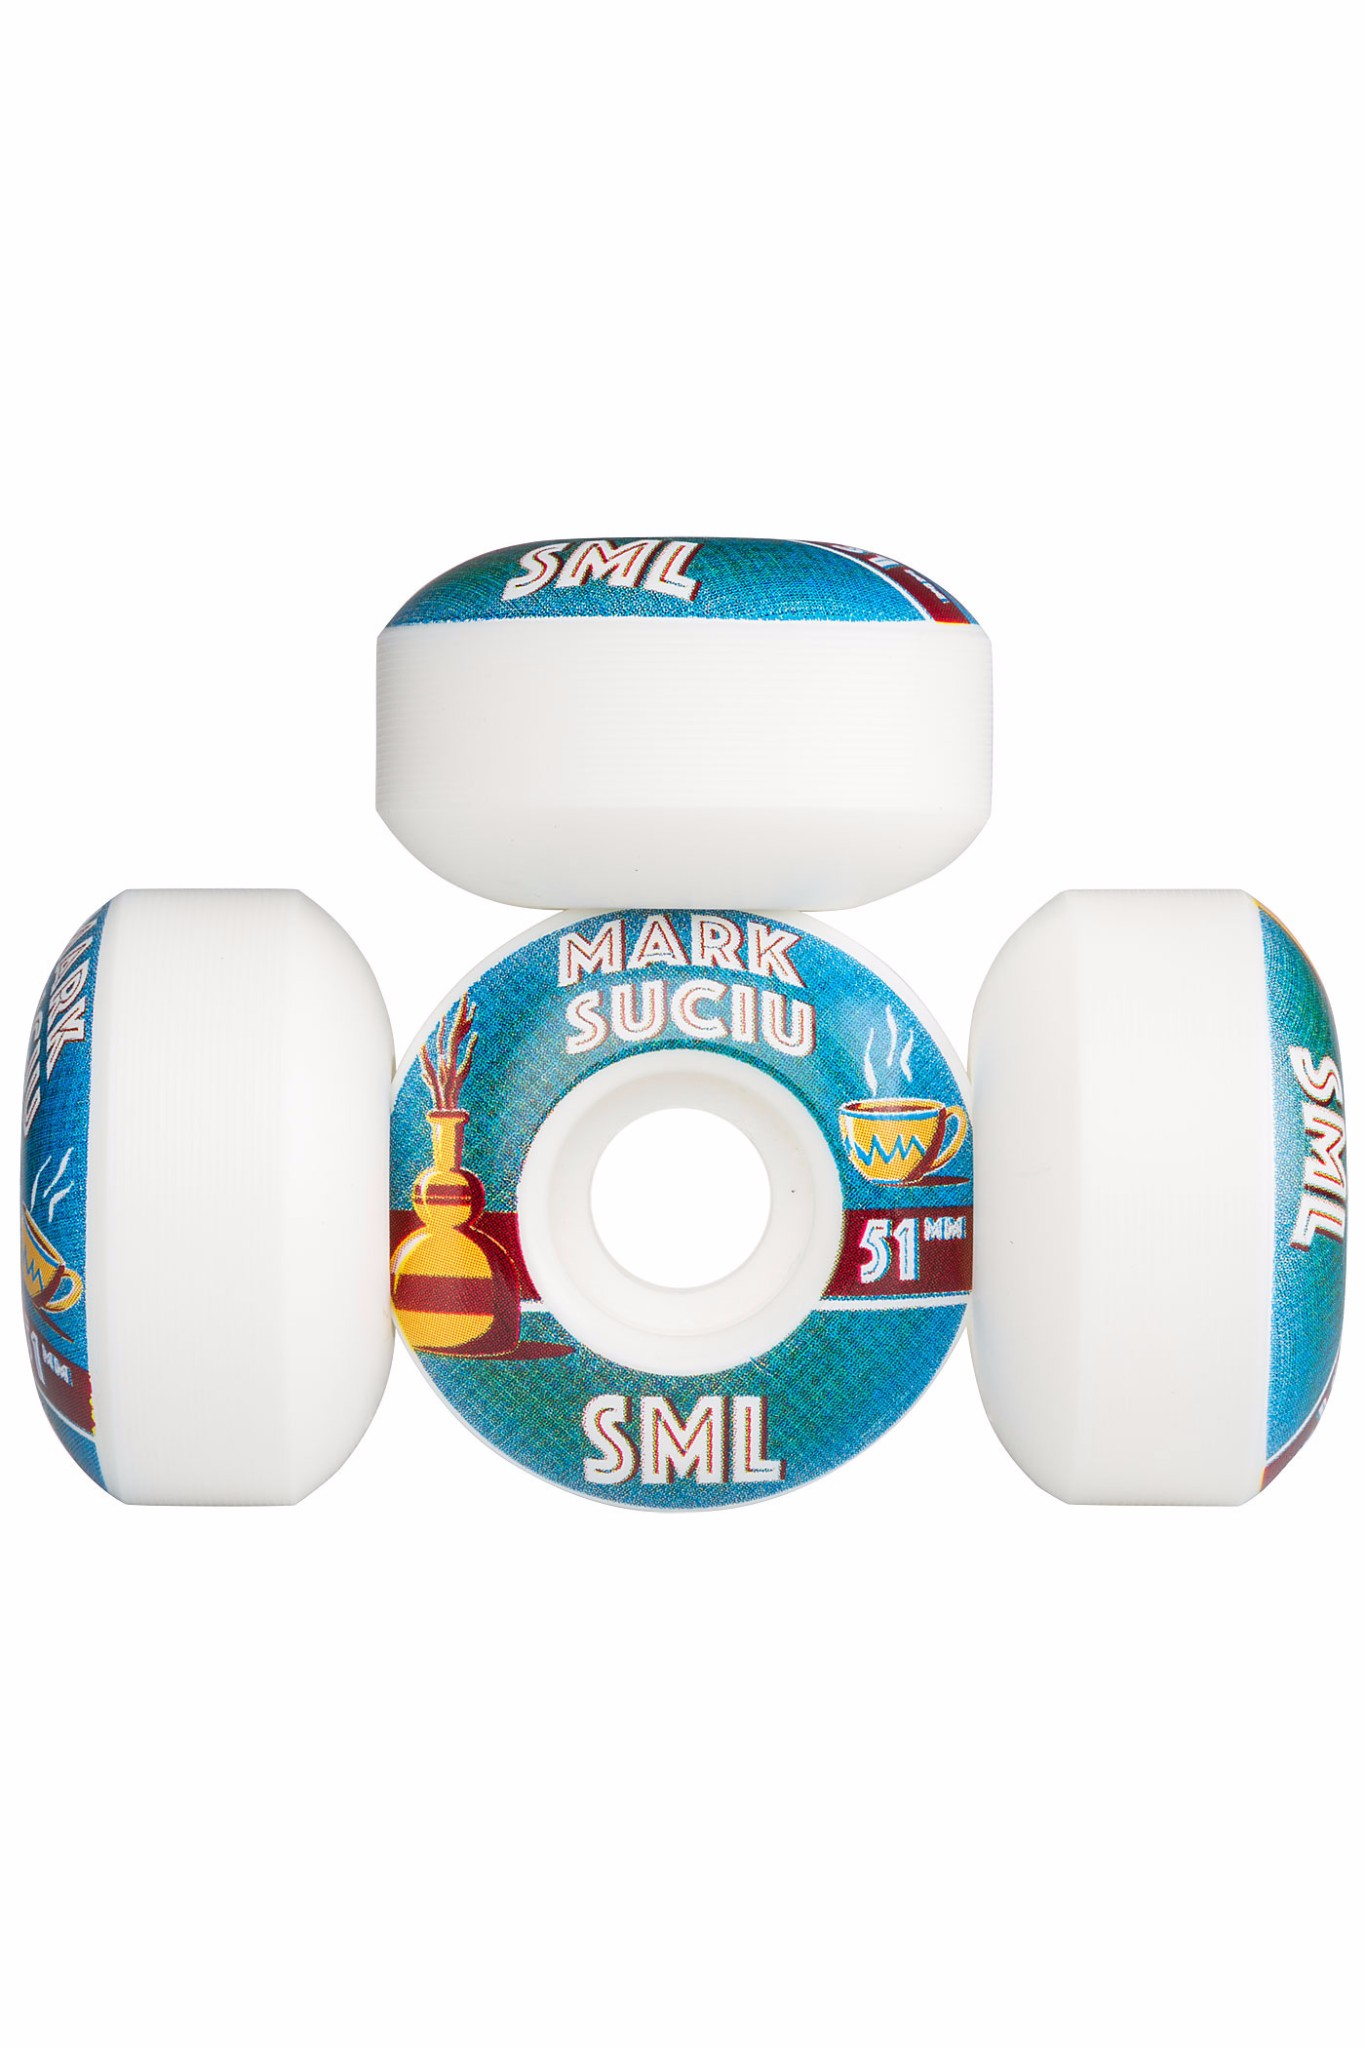 SML Skateboard Wheels Suciu Donta 51mm 99a OG Wide RRP 60 FREE POST